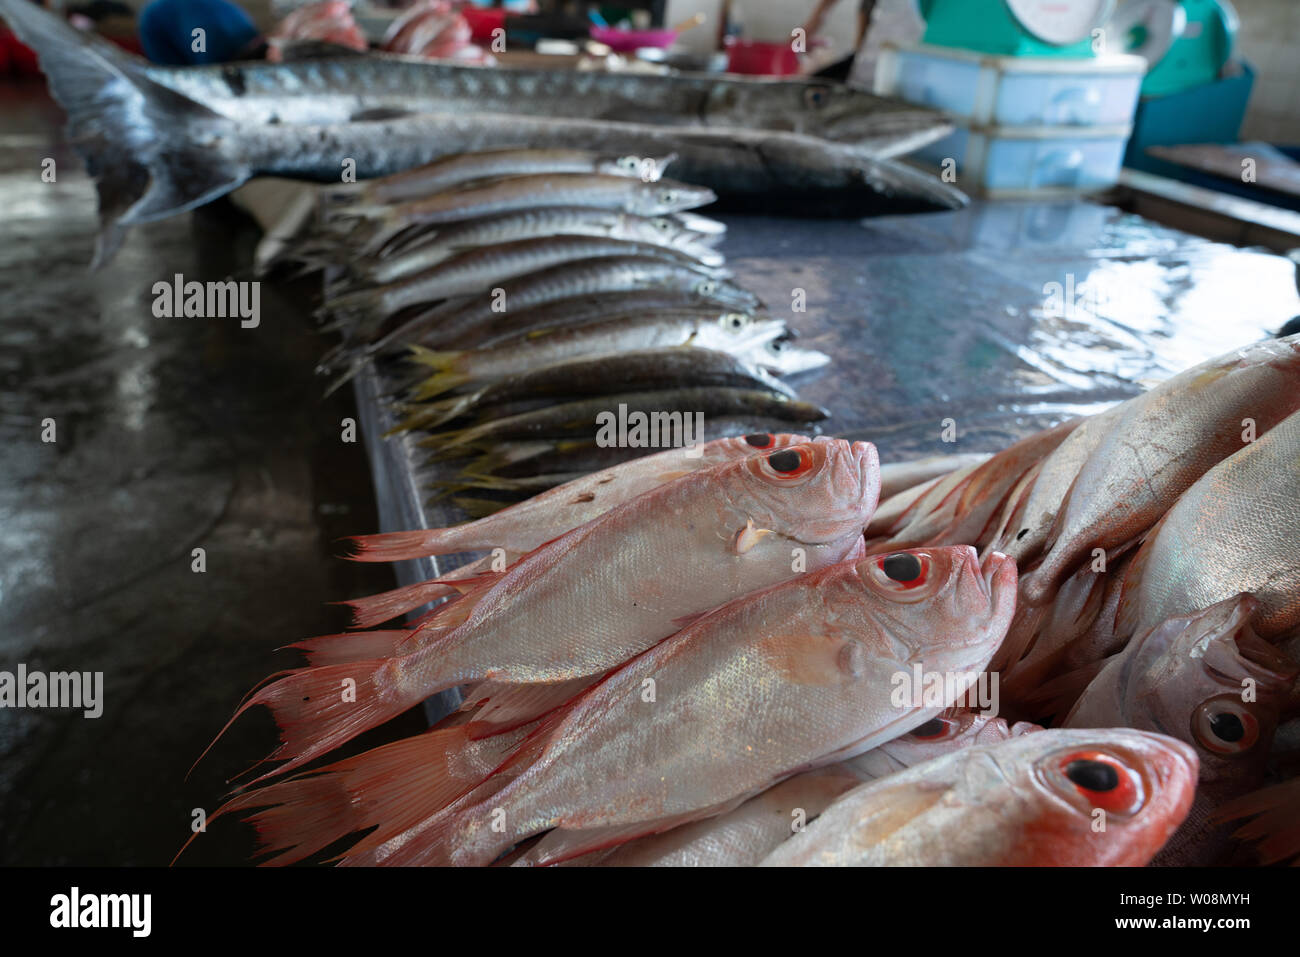 fresh seafood in city's wet or fish market near wharf. - Stock Image